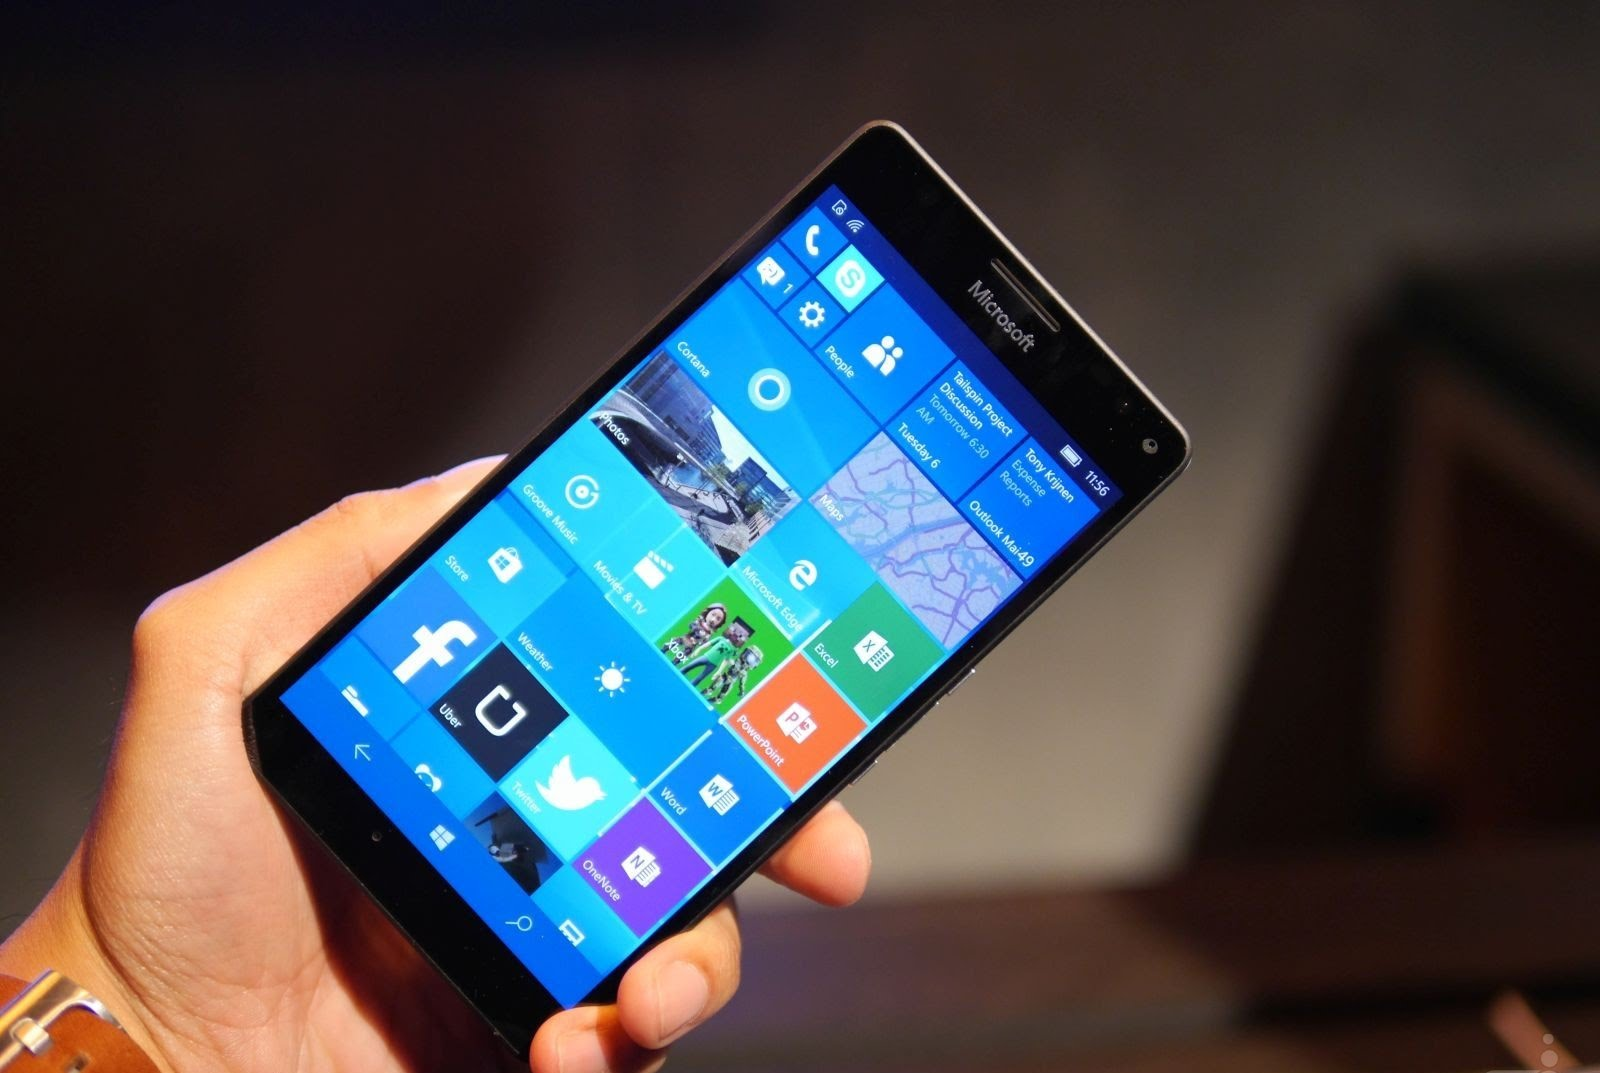 Windows Smartphone: 3 of Microsoft's Hottest Handsets that are Buzzing the Market in 2016